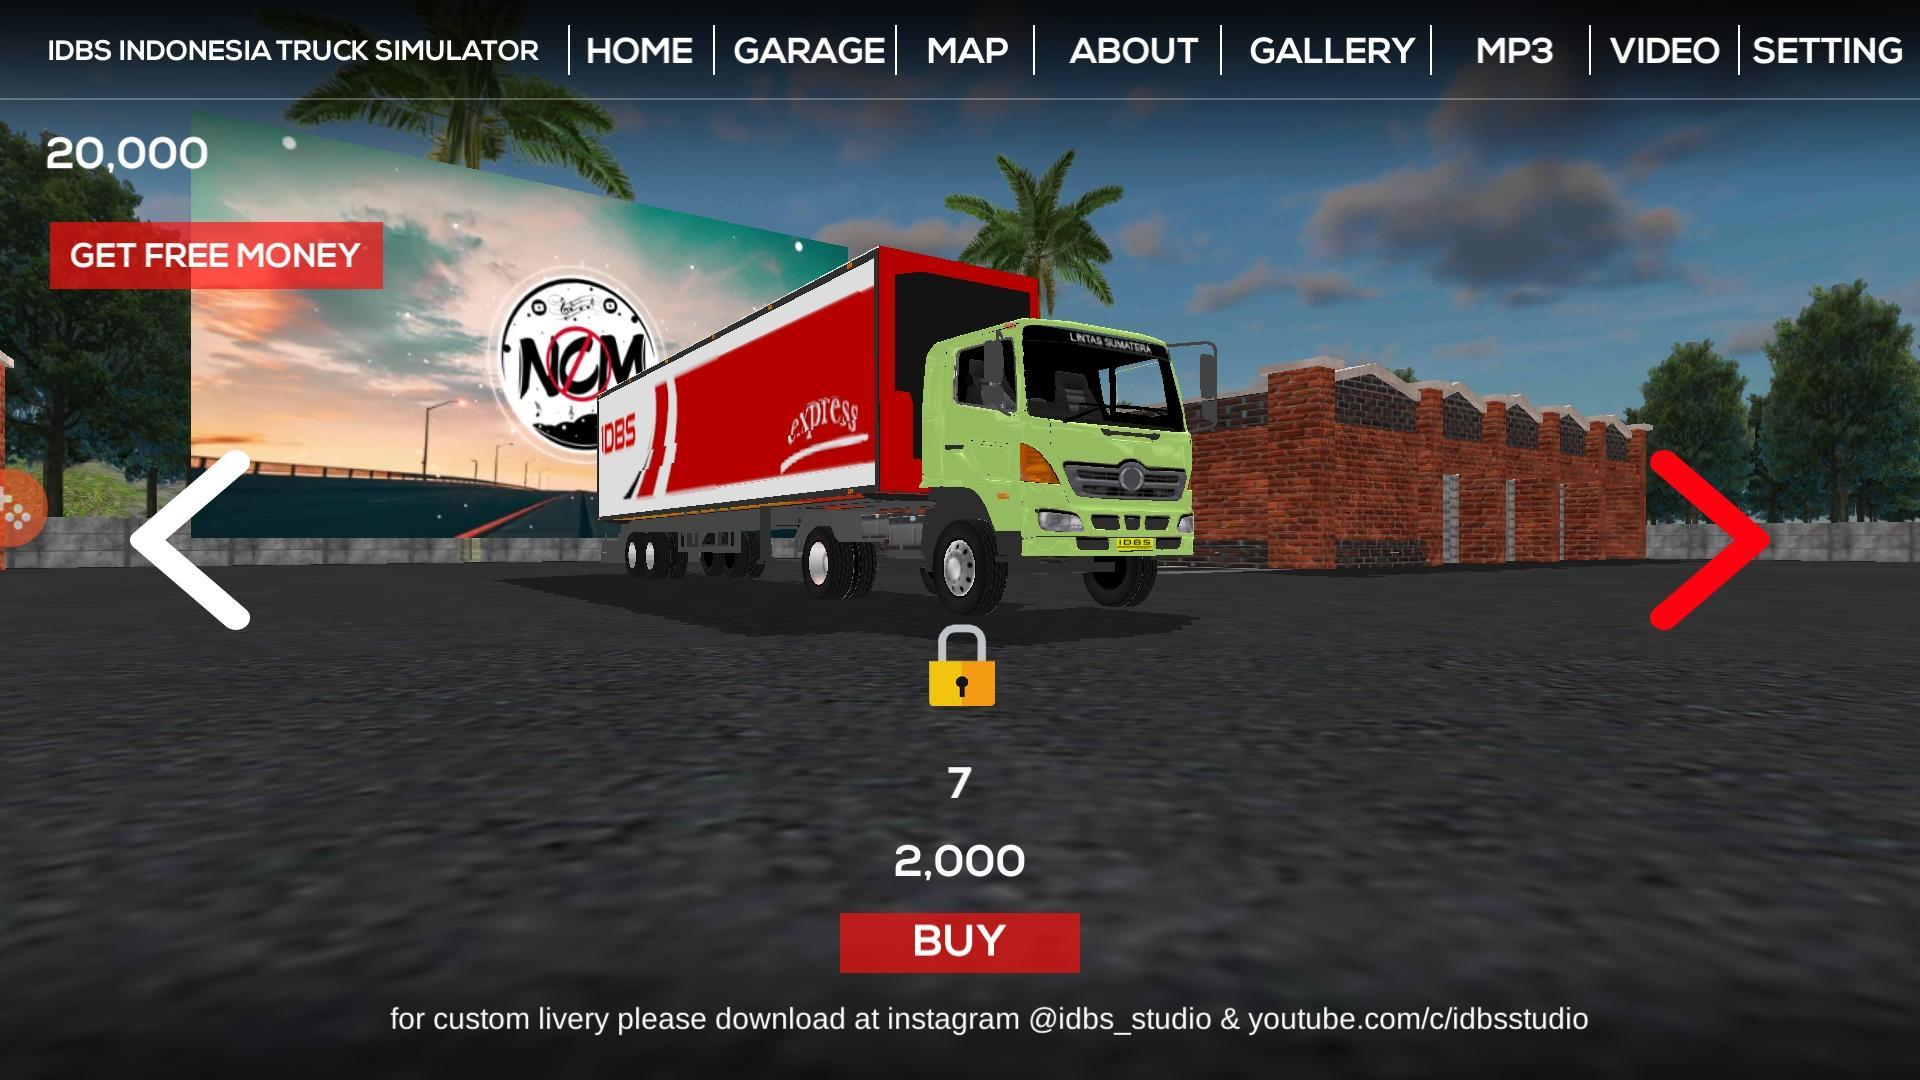 IDBS Indonesia Truck Simulator for Android - APK Download